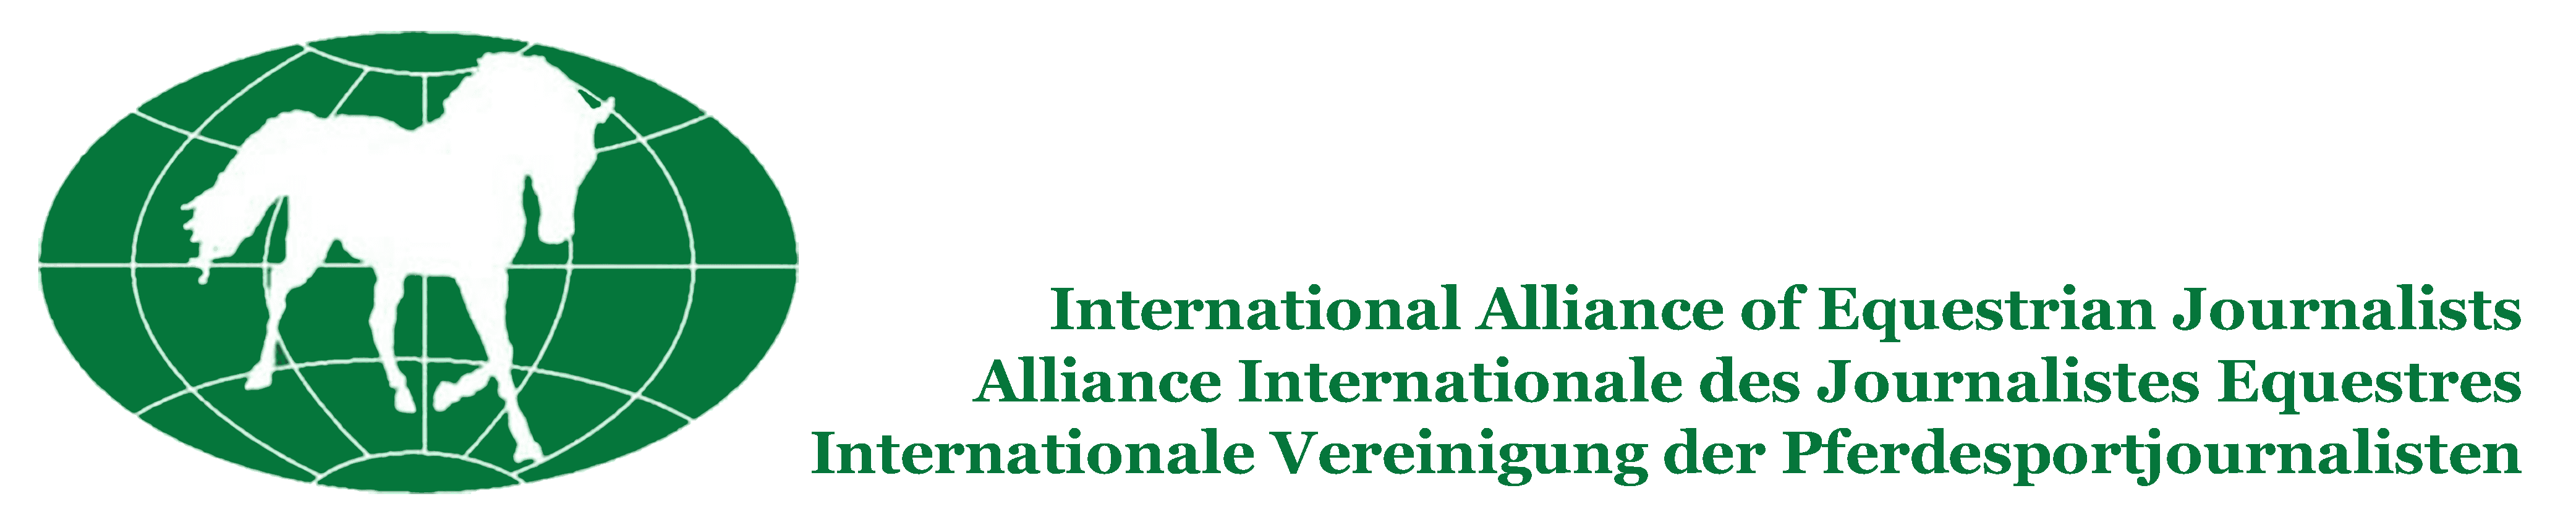 International Alliance of Equestrian Journalists